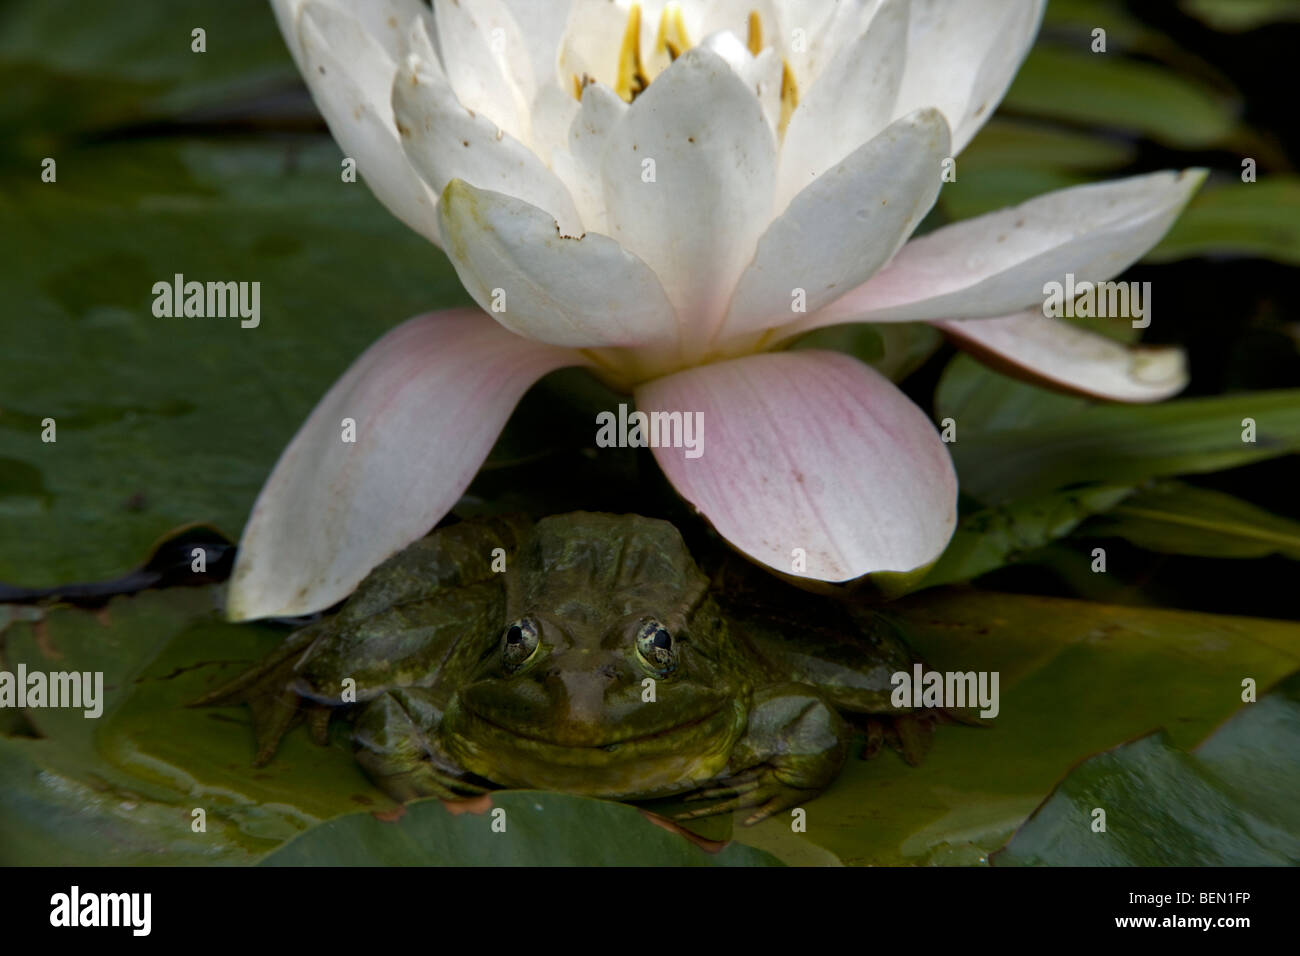 Lily flower under lily pad stock photos lily flower under lily pad chiricahua leopard frog rana chiricahuensis arizona usa on lily pad with izmirmasajfo